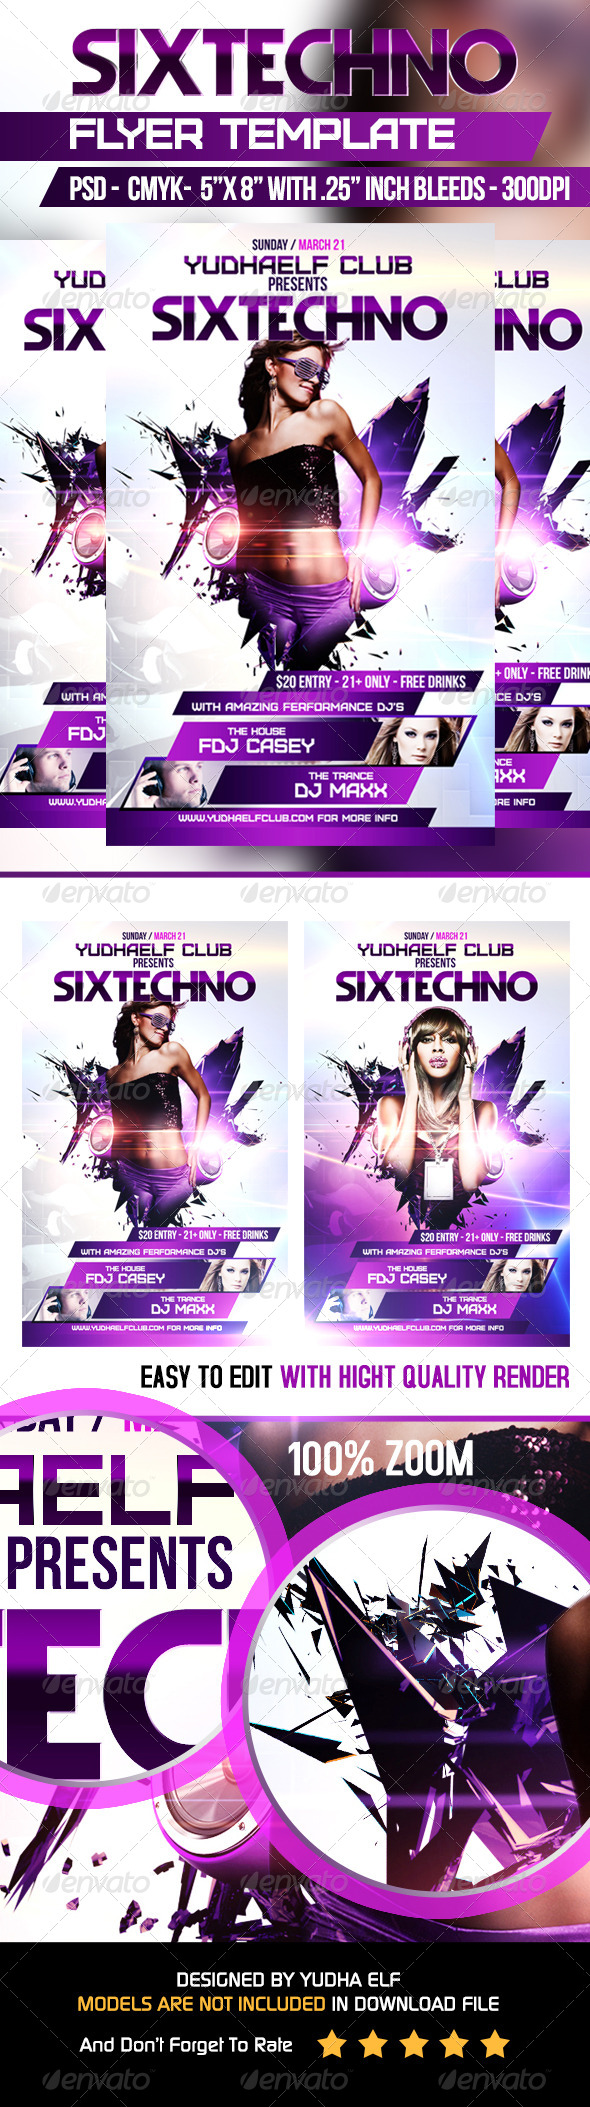 SIxtechno Flyer Template